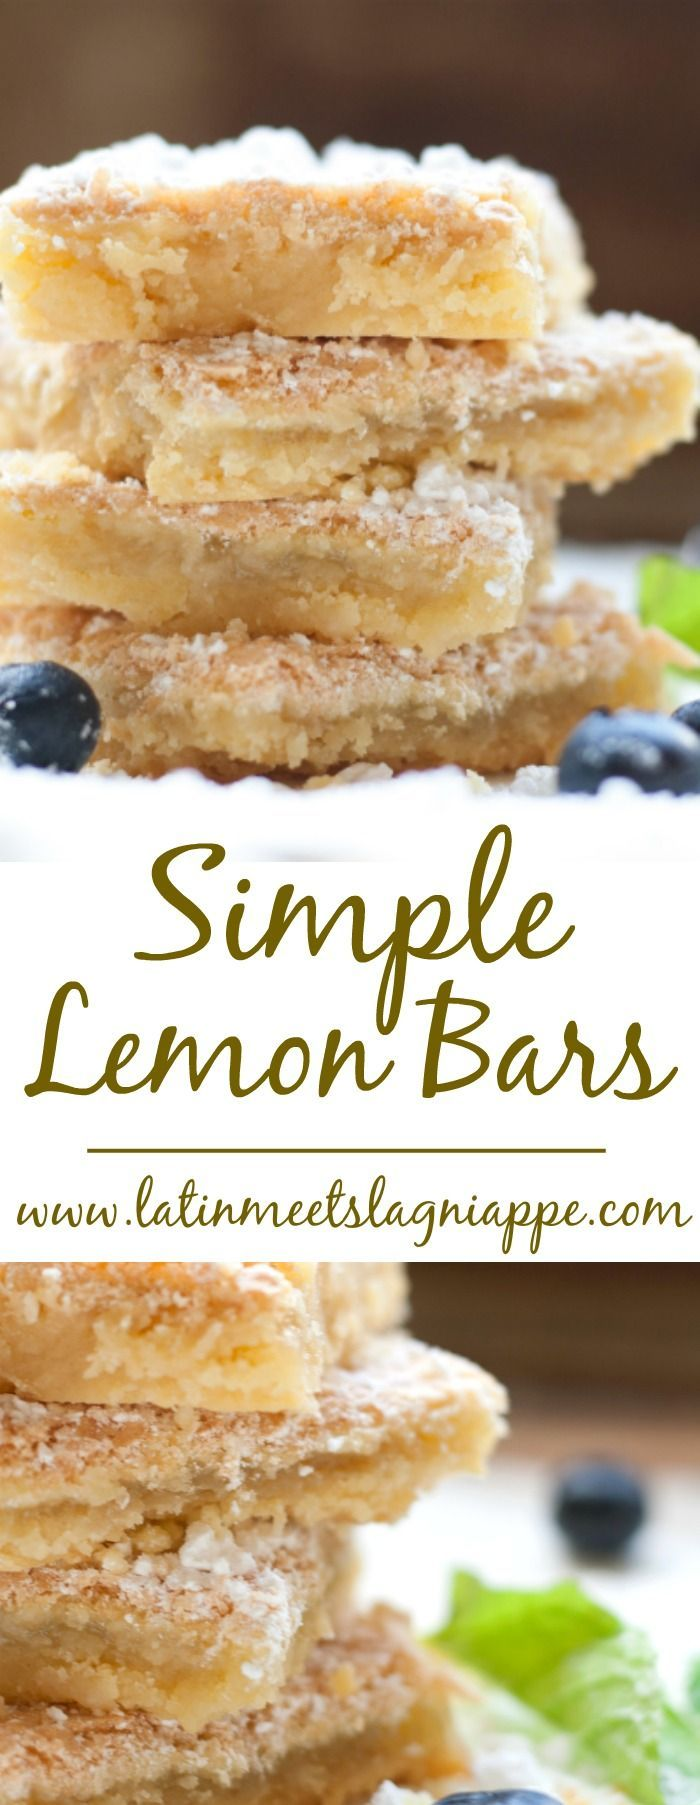 Simple lemon bars recipe for a sweet summer treat